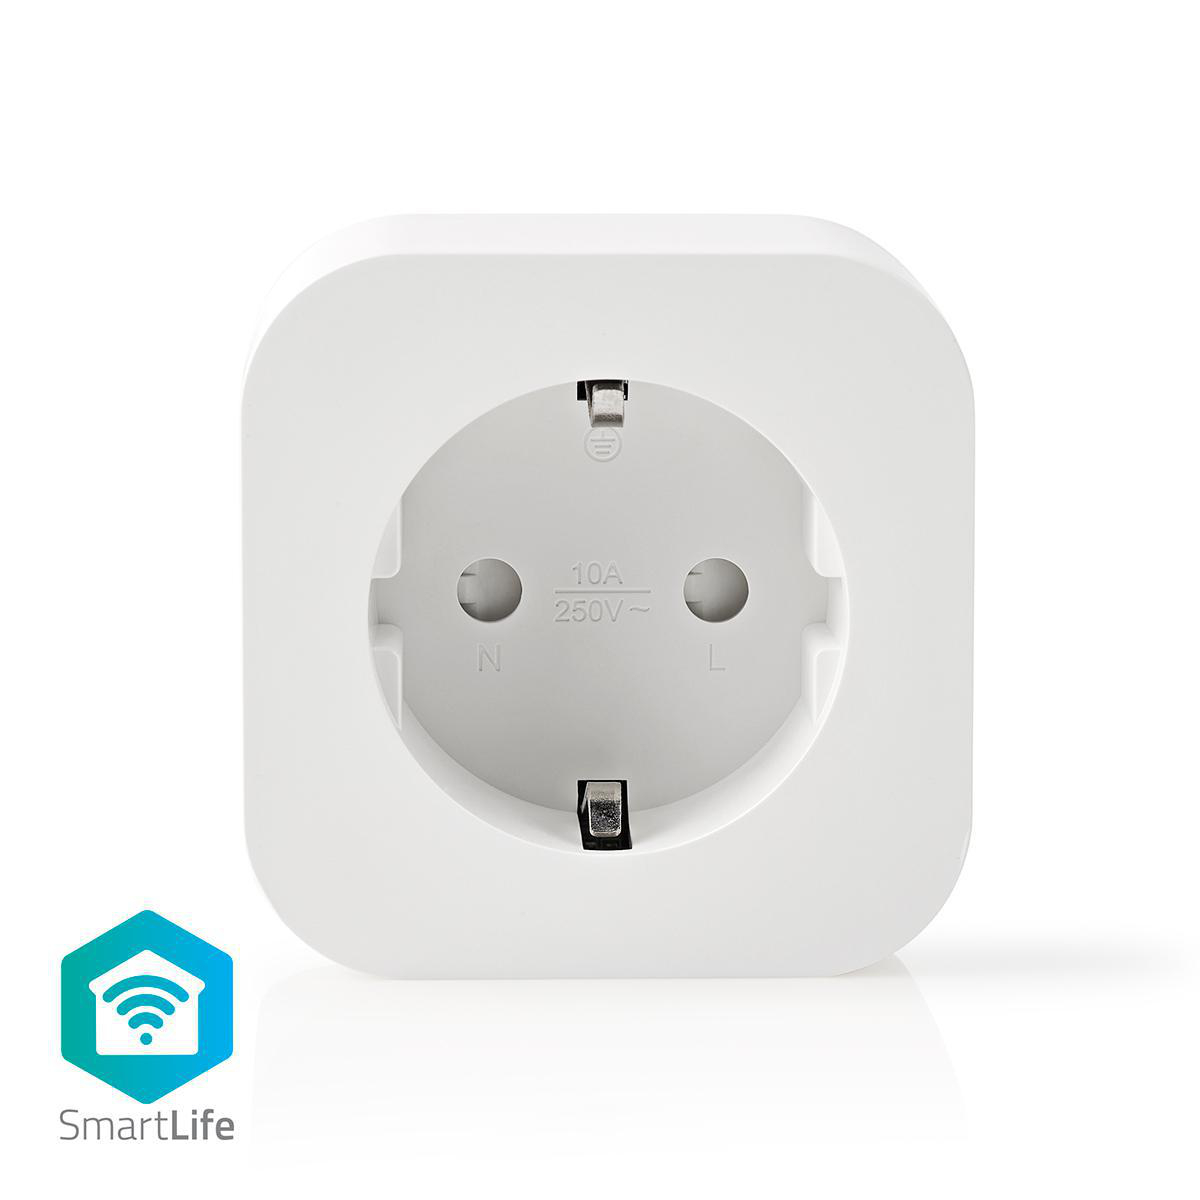 How to install... the SmartLife Socket